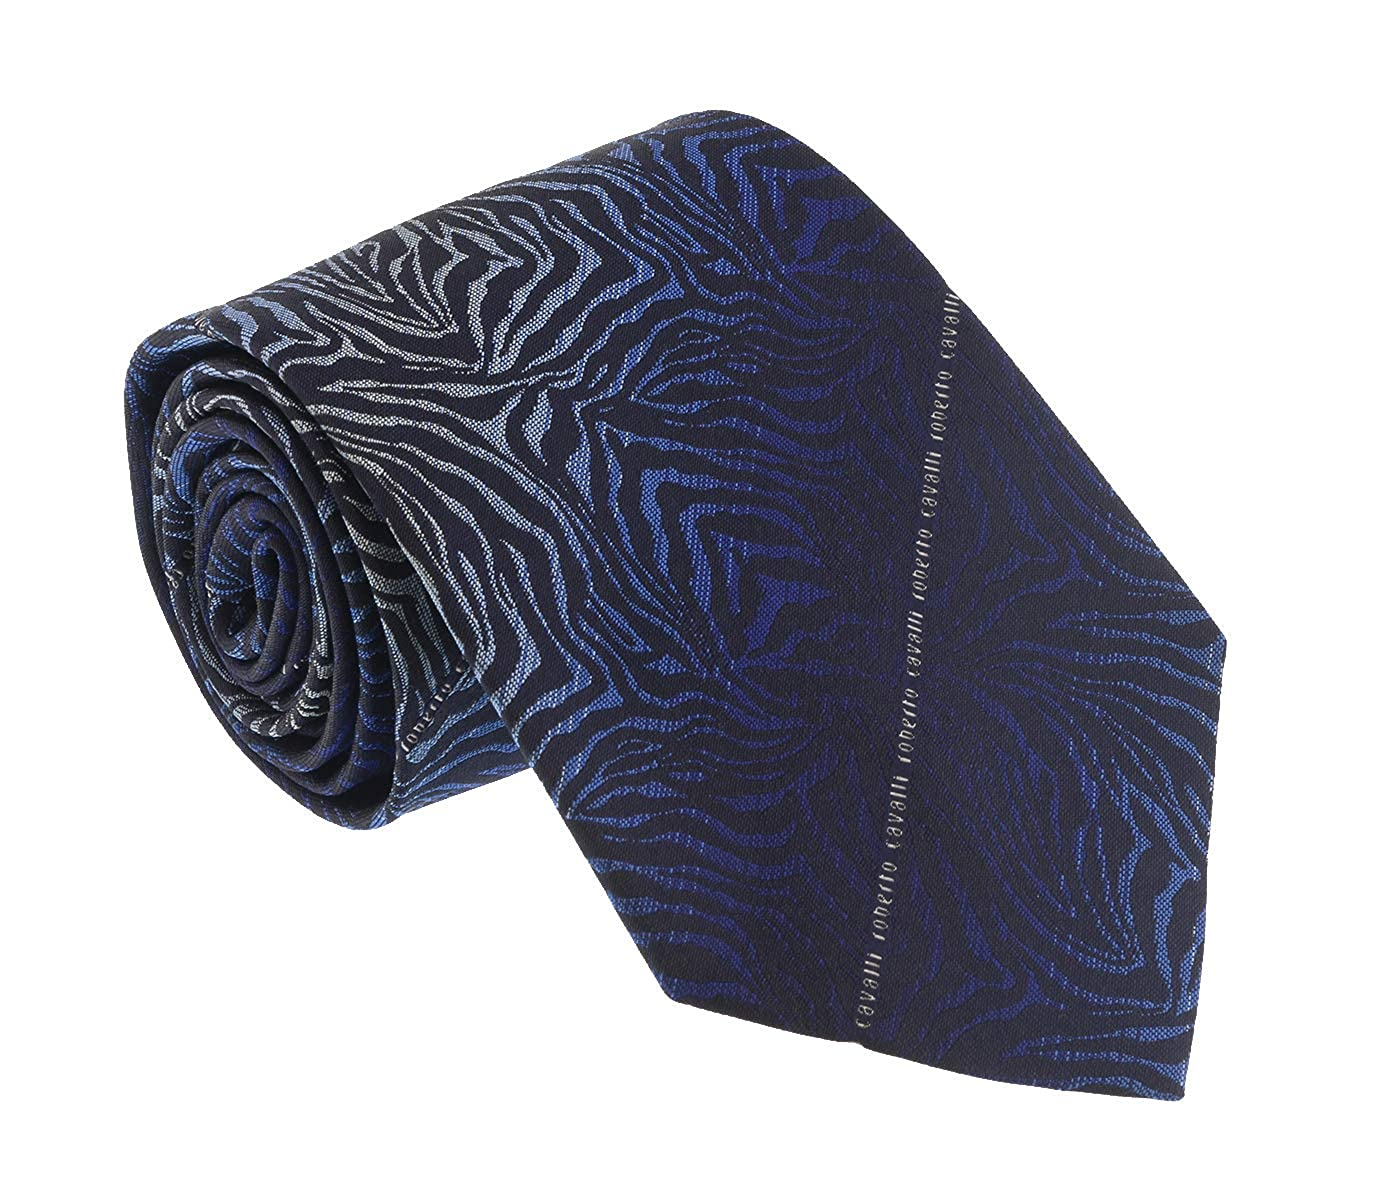 Roberto Cavalli ESZ021 04500 Blue Zebra Tie for Mens